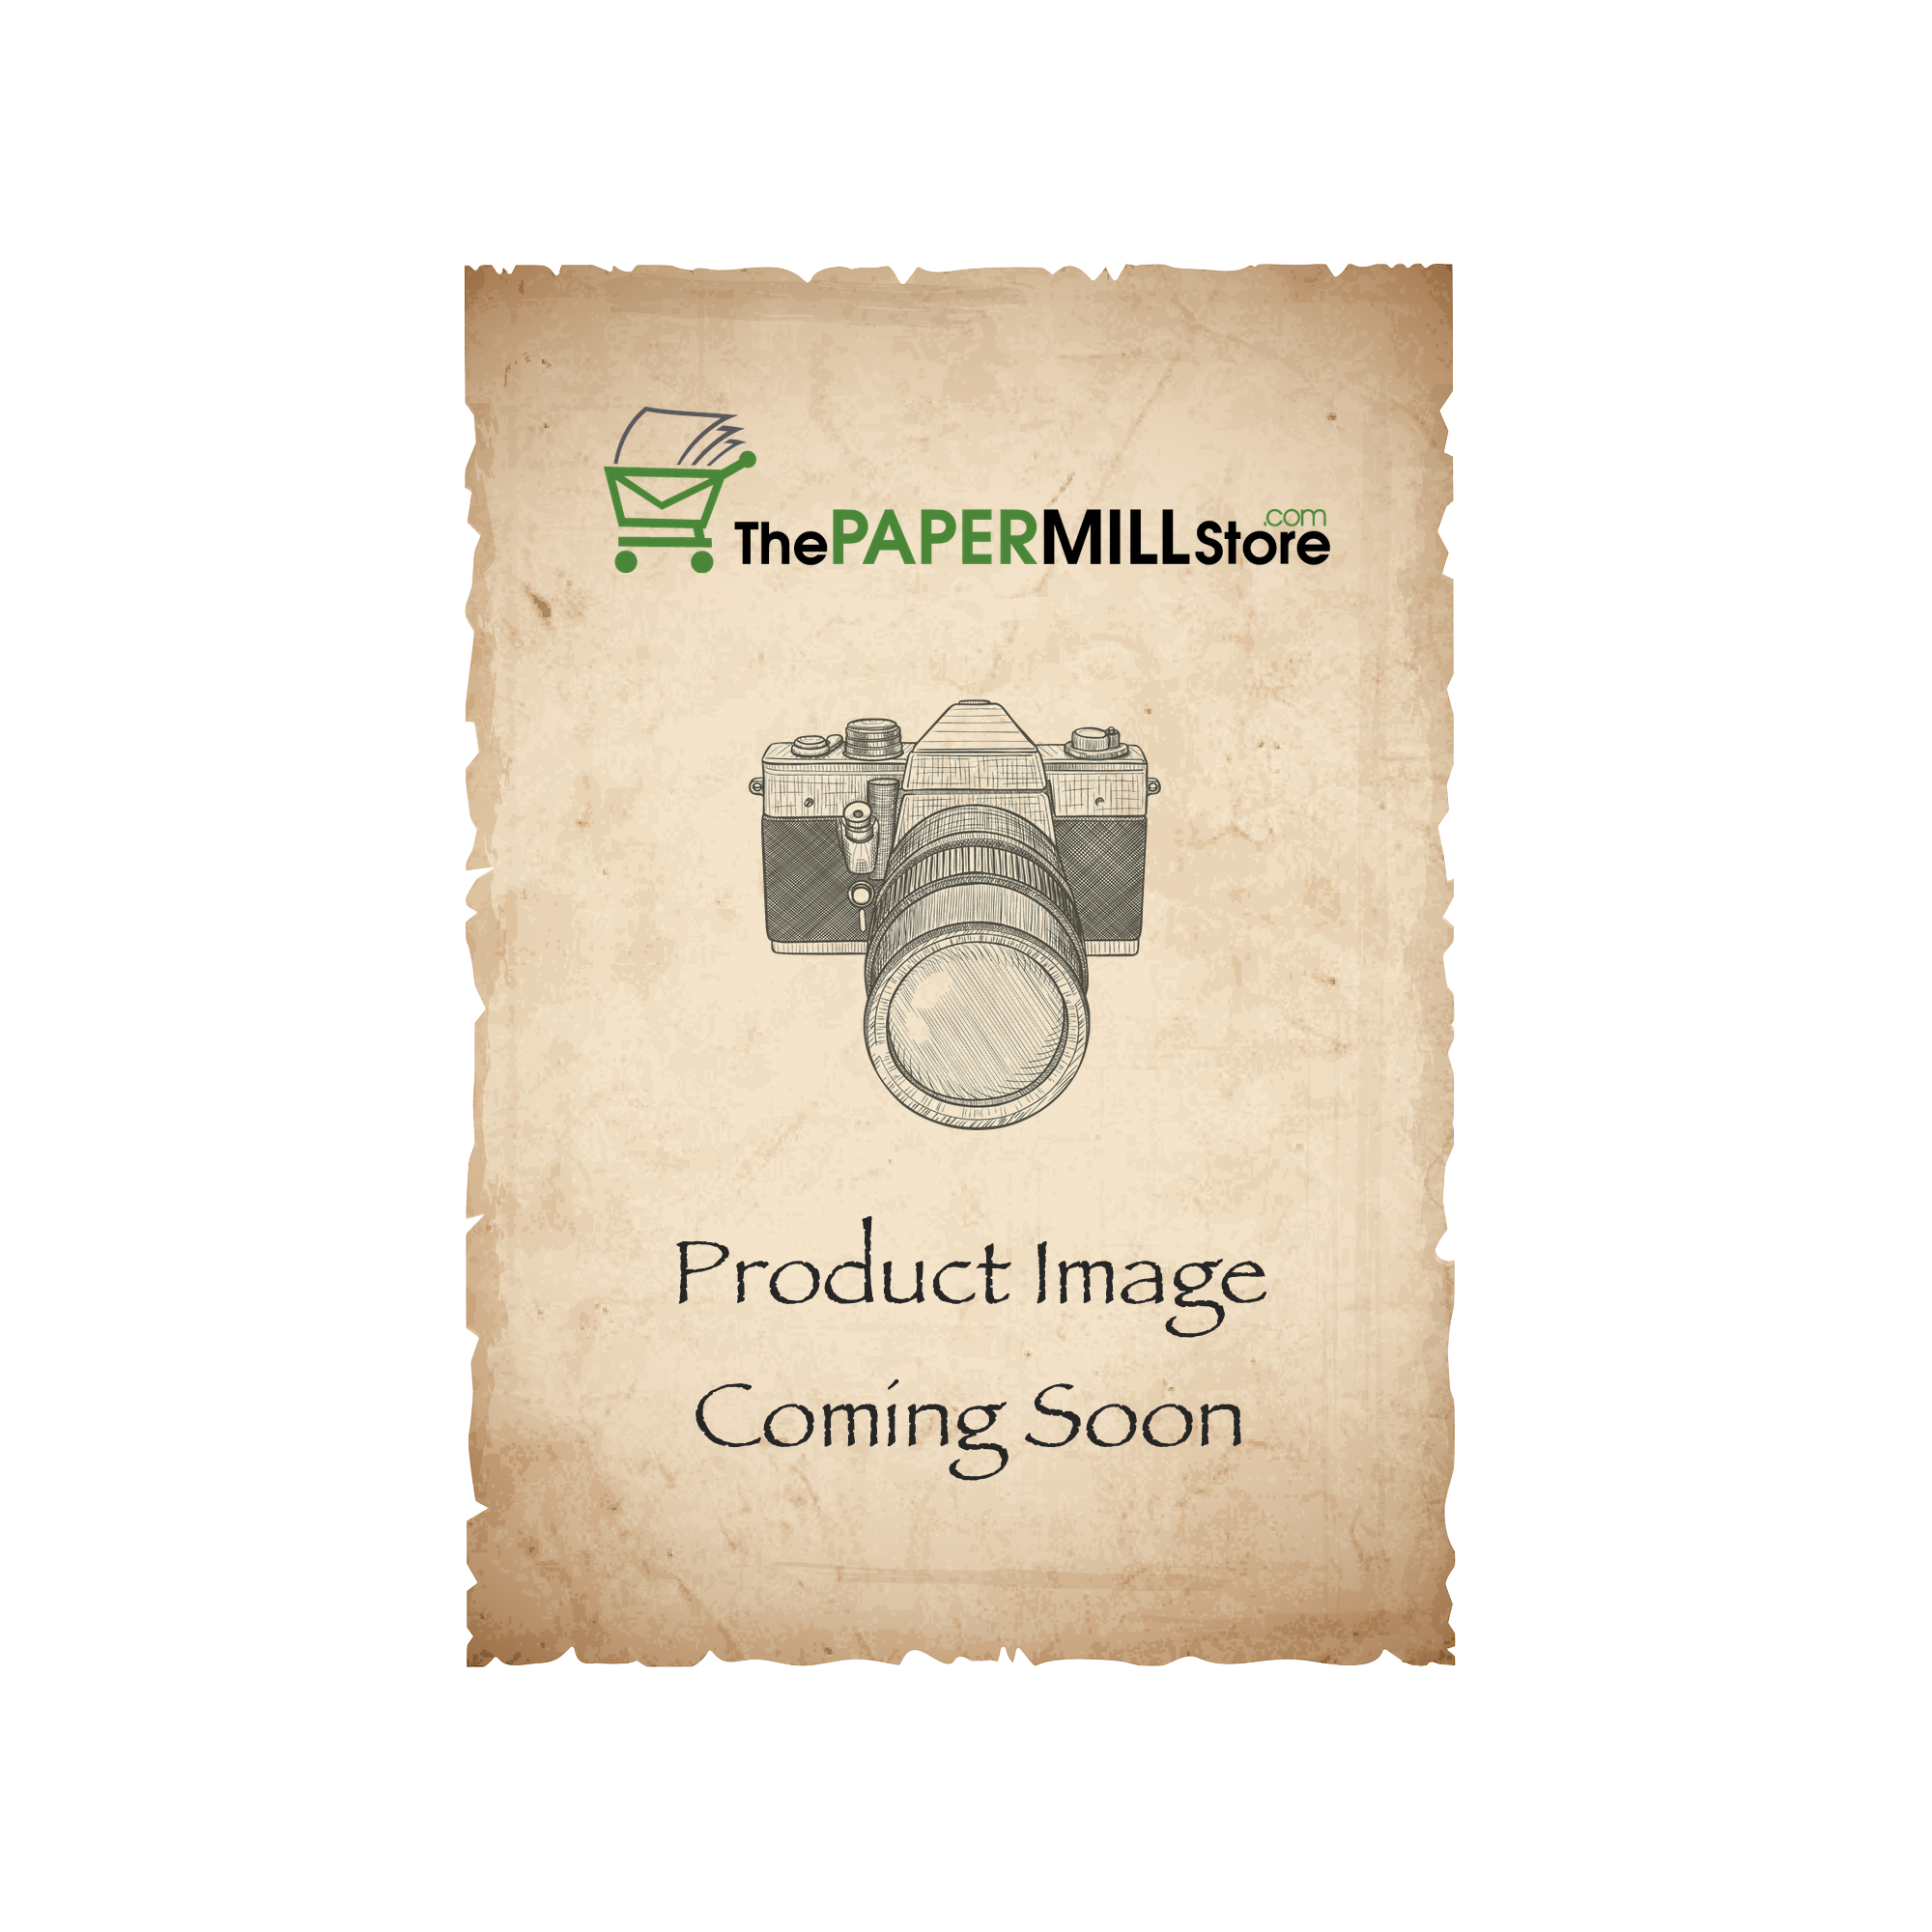 Buy ESSE Pearlized Latte Card Stock - 19 x 13 in 105 lb Cover Smooth Digital C/2S  30% Recycled 250 per Package at The Paper Mill Store .com